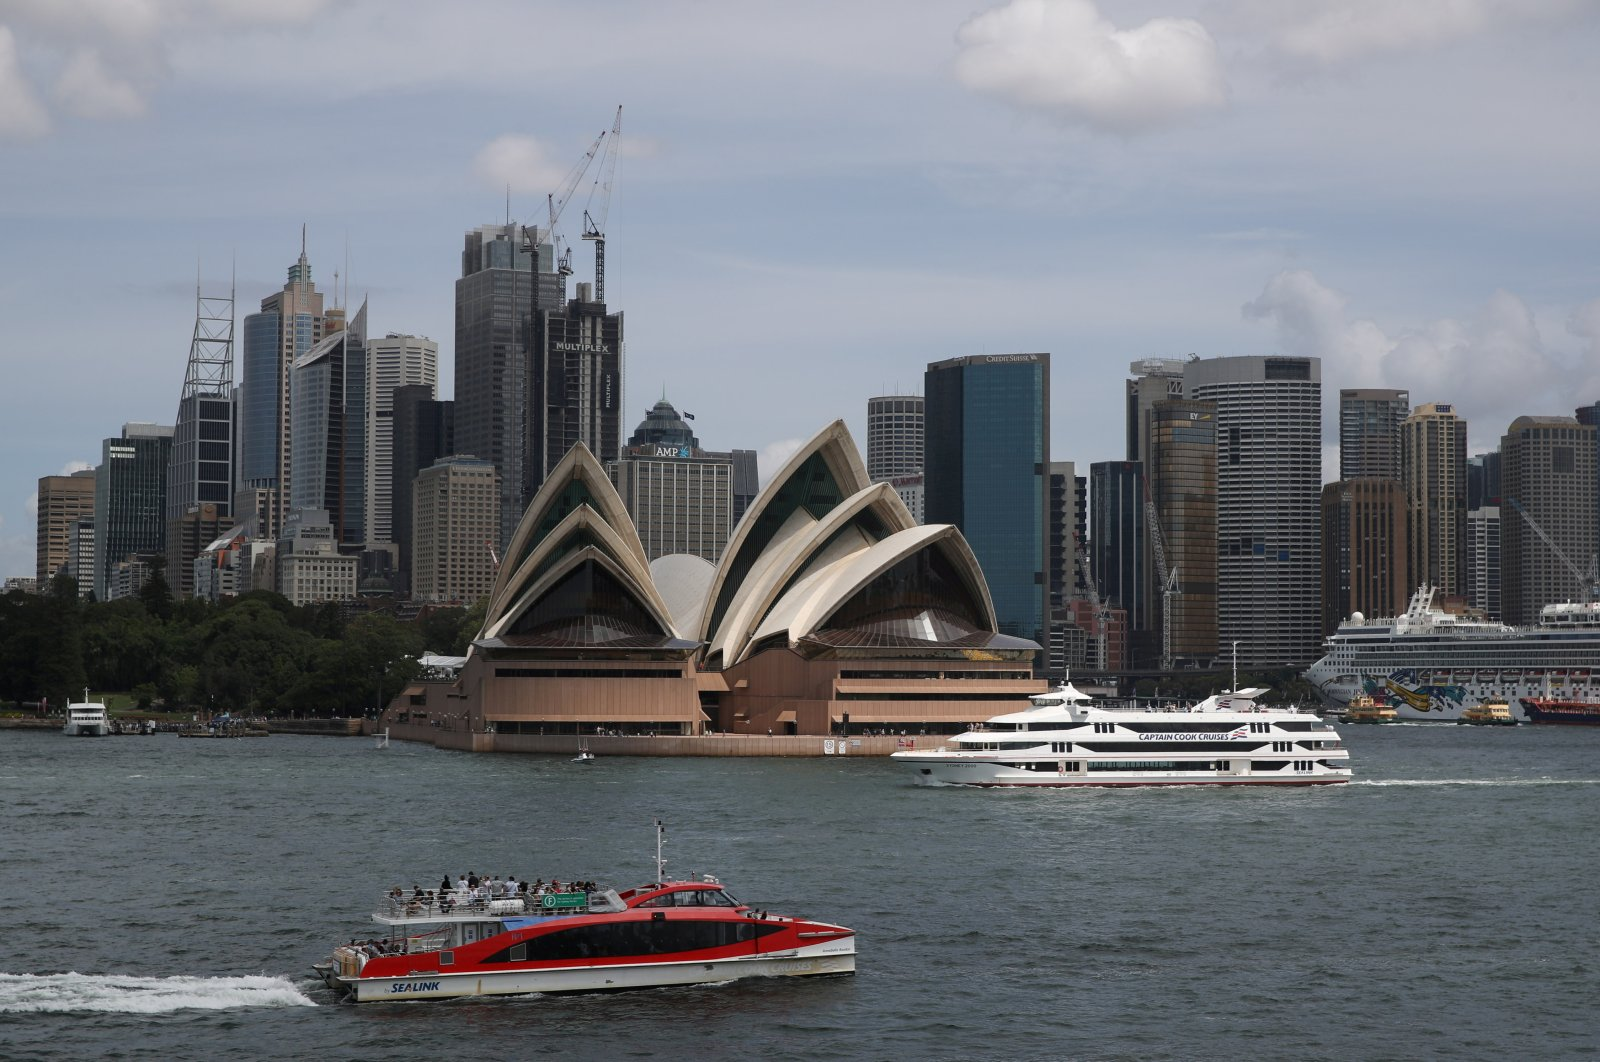 The Sydney Opera House and city center skyline are seen in Sydney, Australia, Feb. 28, 2020. (Reuters Photo)